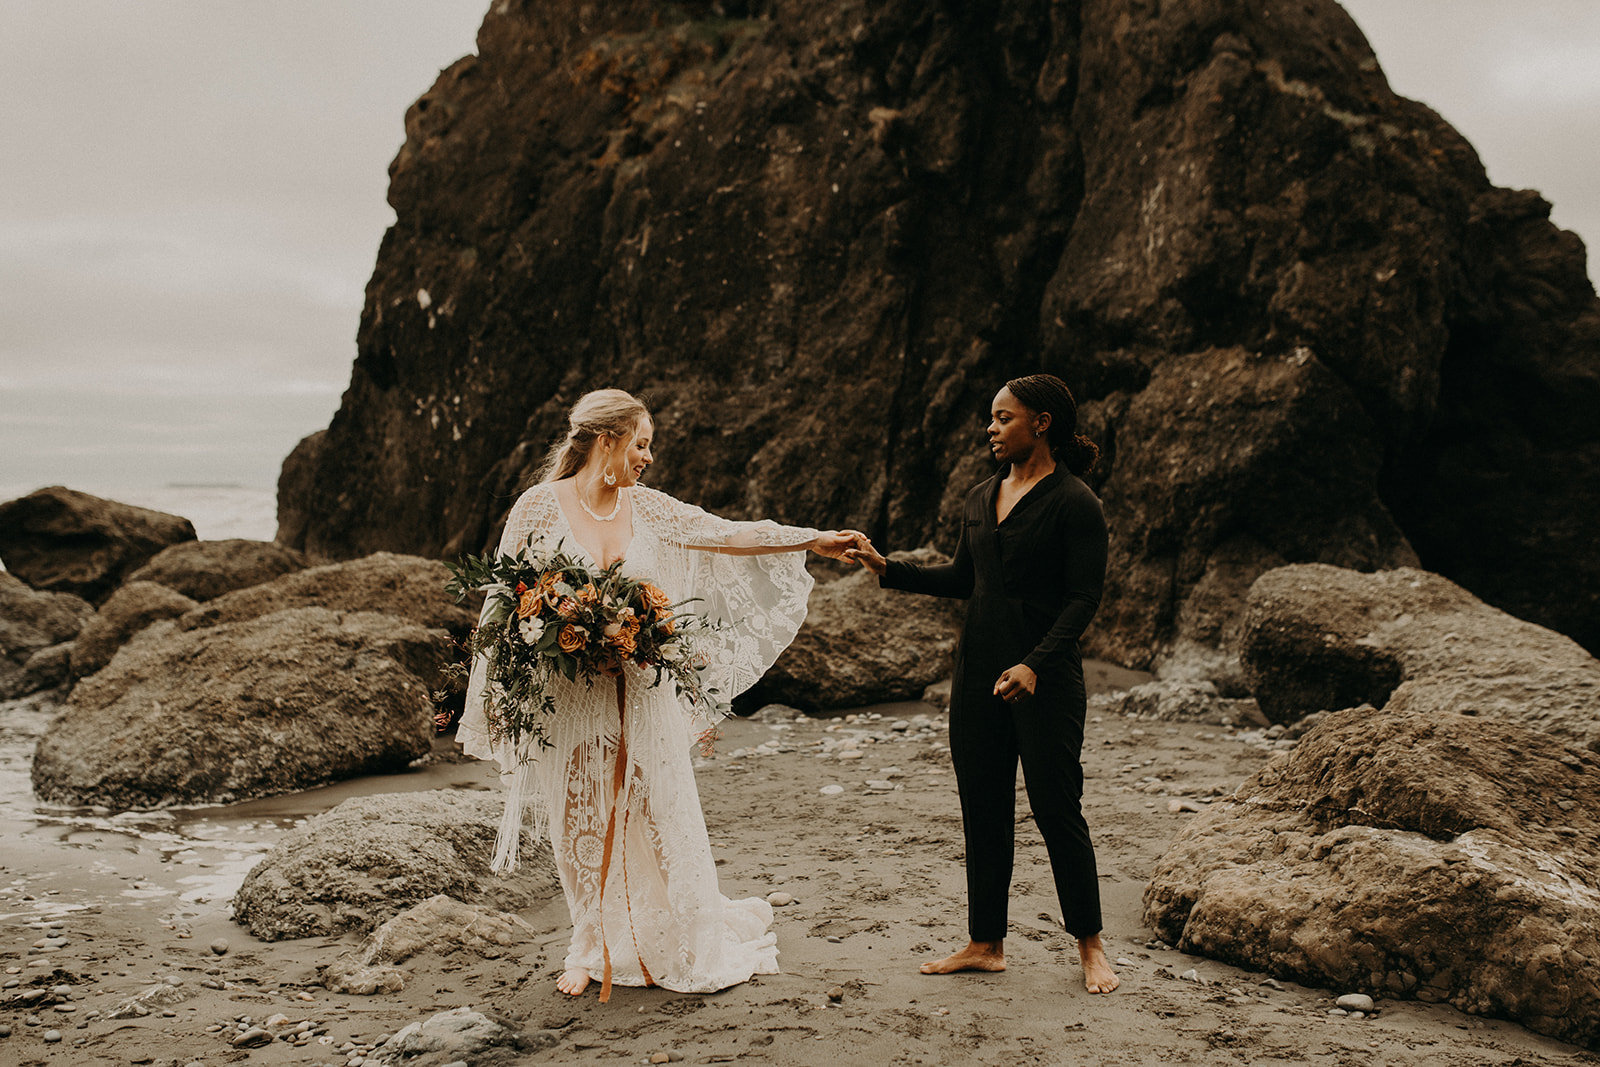 Ruby_Beach_Styled_Elopement_-_Run_Away_with_Me_Elopement_Collective_-_Kamra_Fuller_Photography_-_First_Look-23